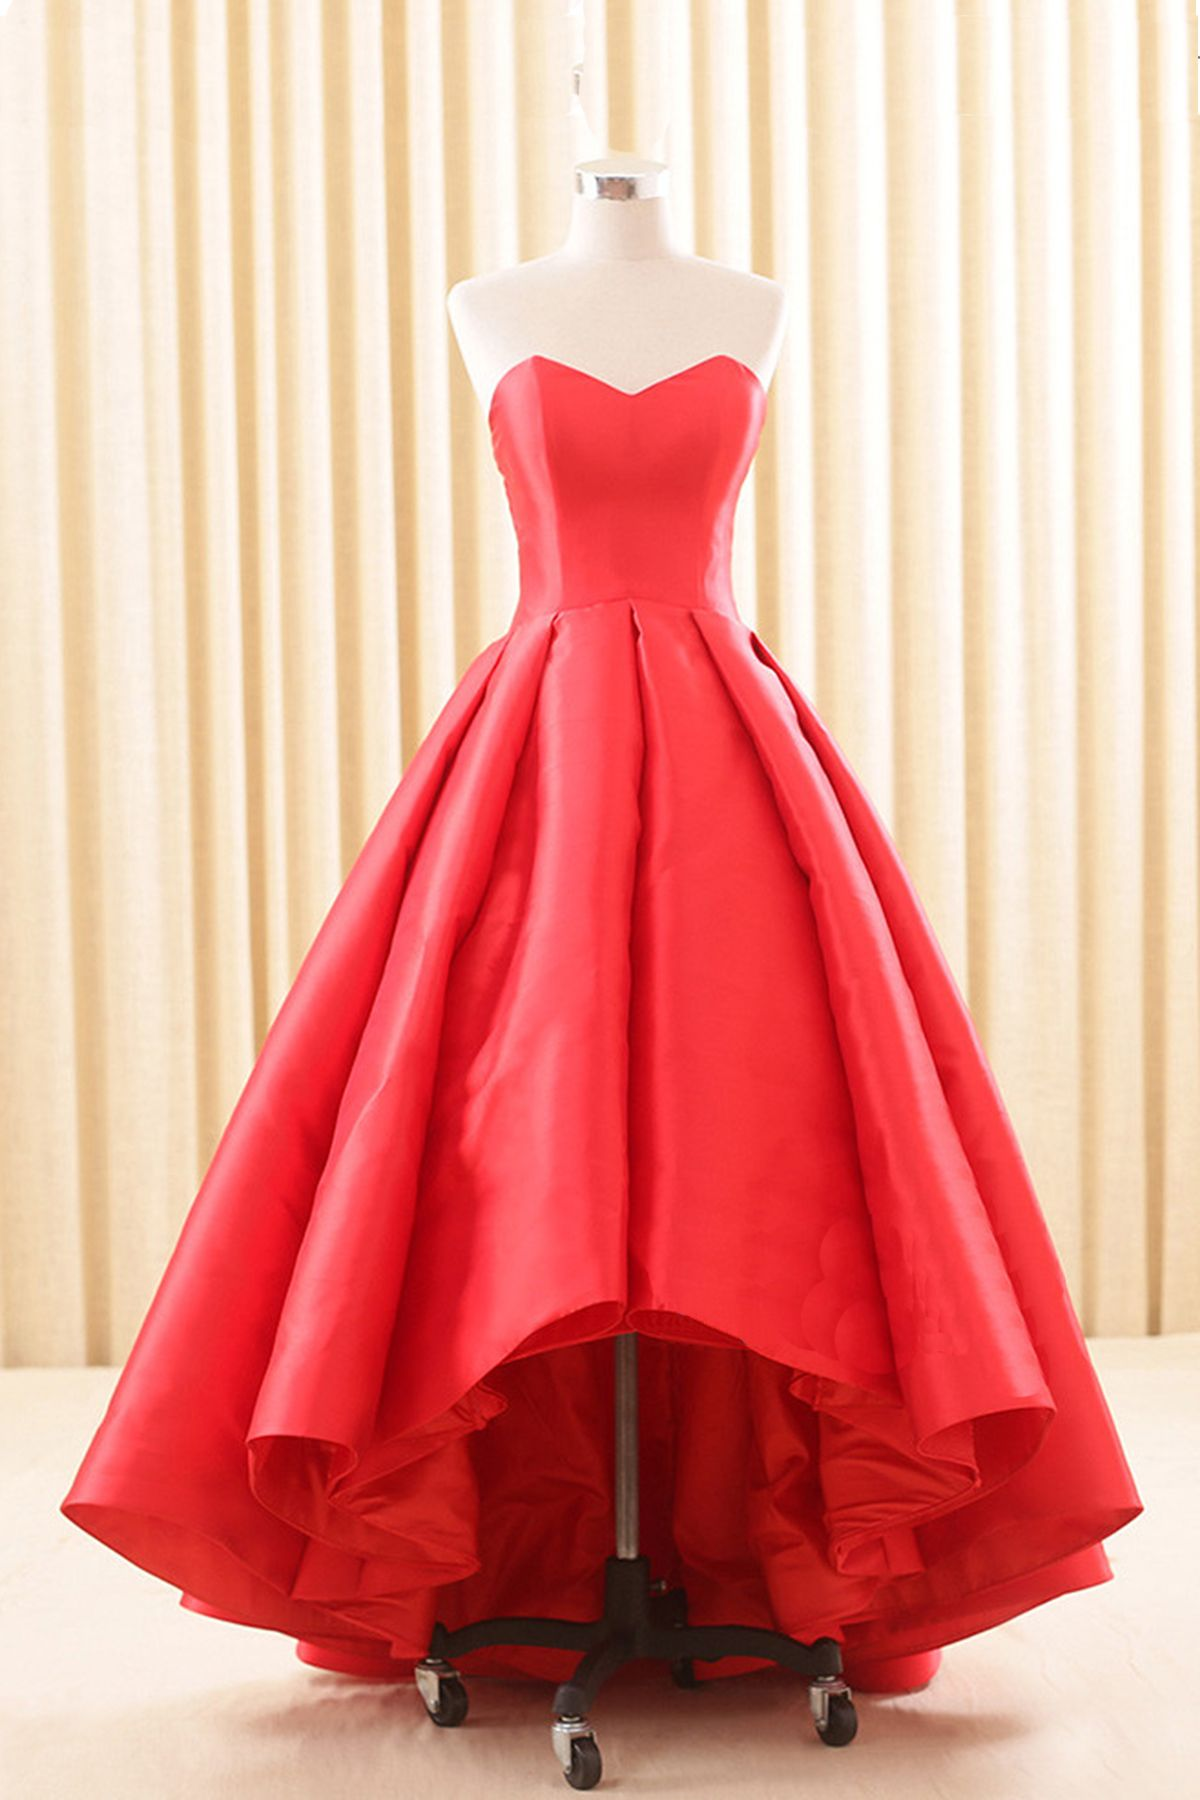 to wear - Dresses prom high low red video